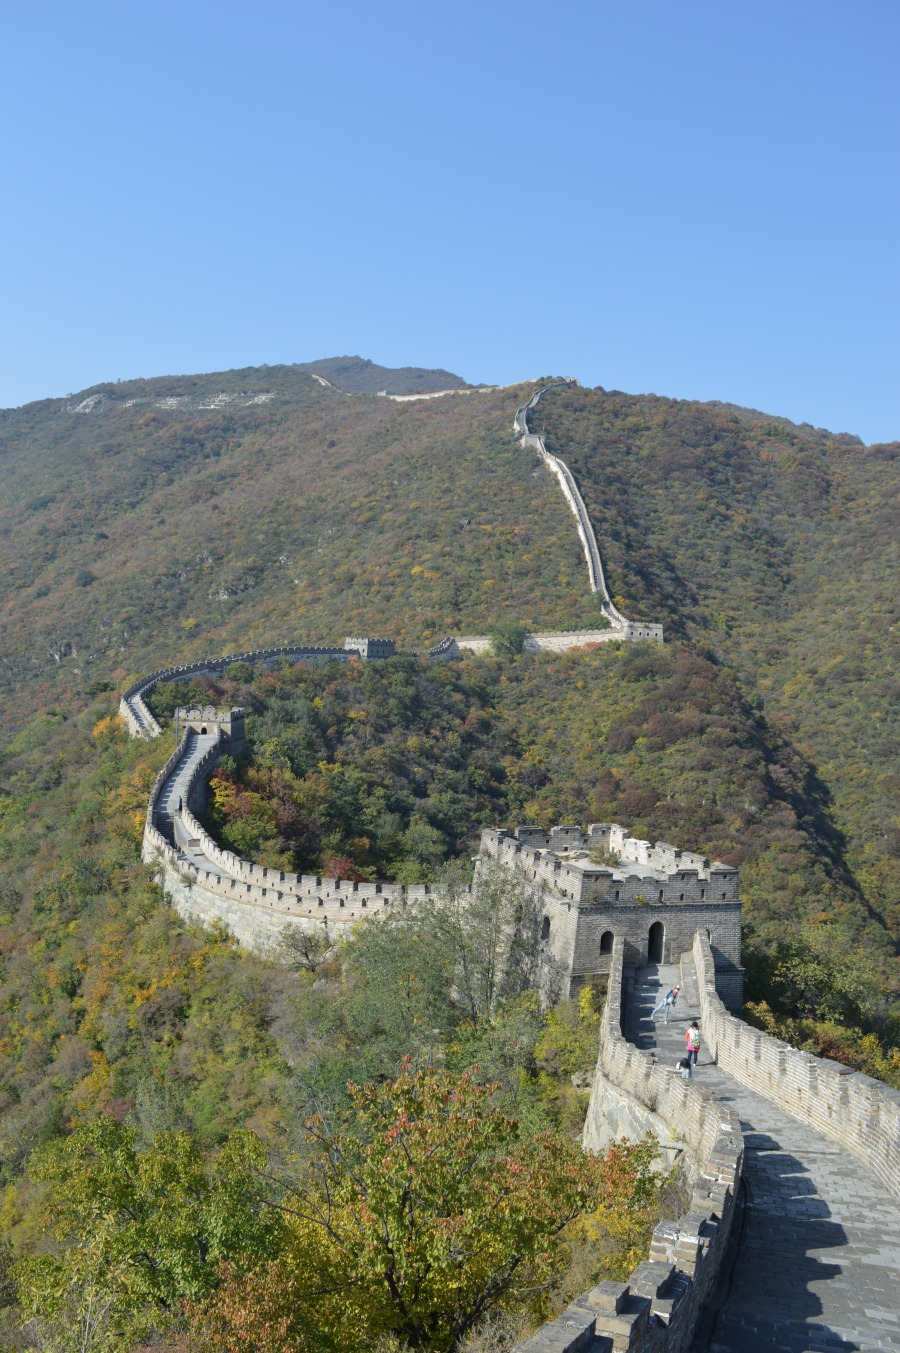 The Great Wall of China (Mutianyu Section)